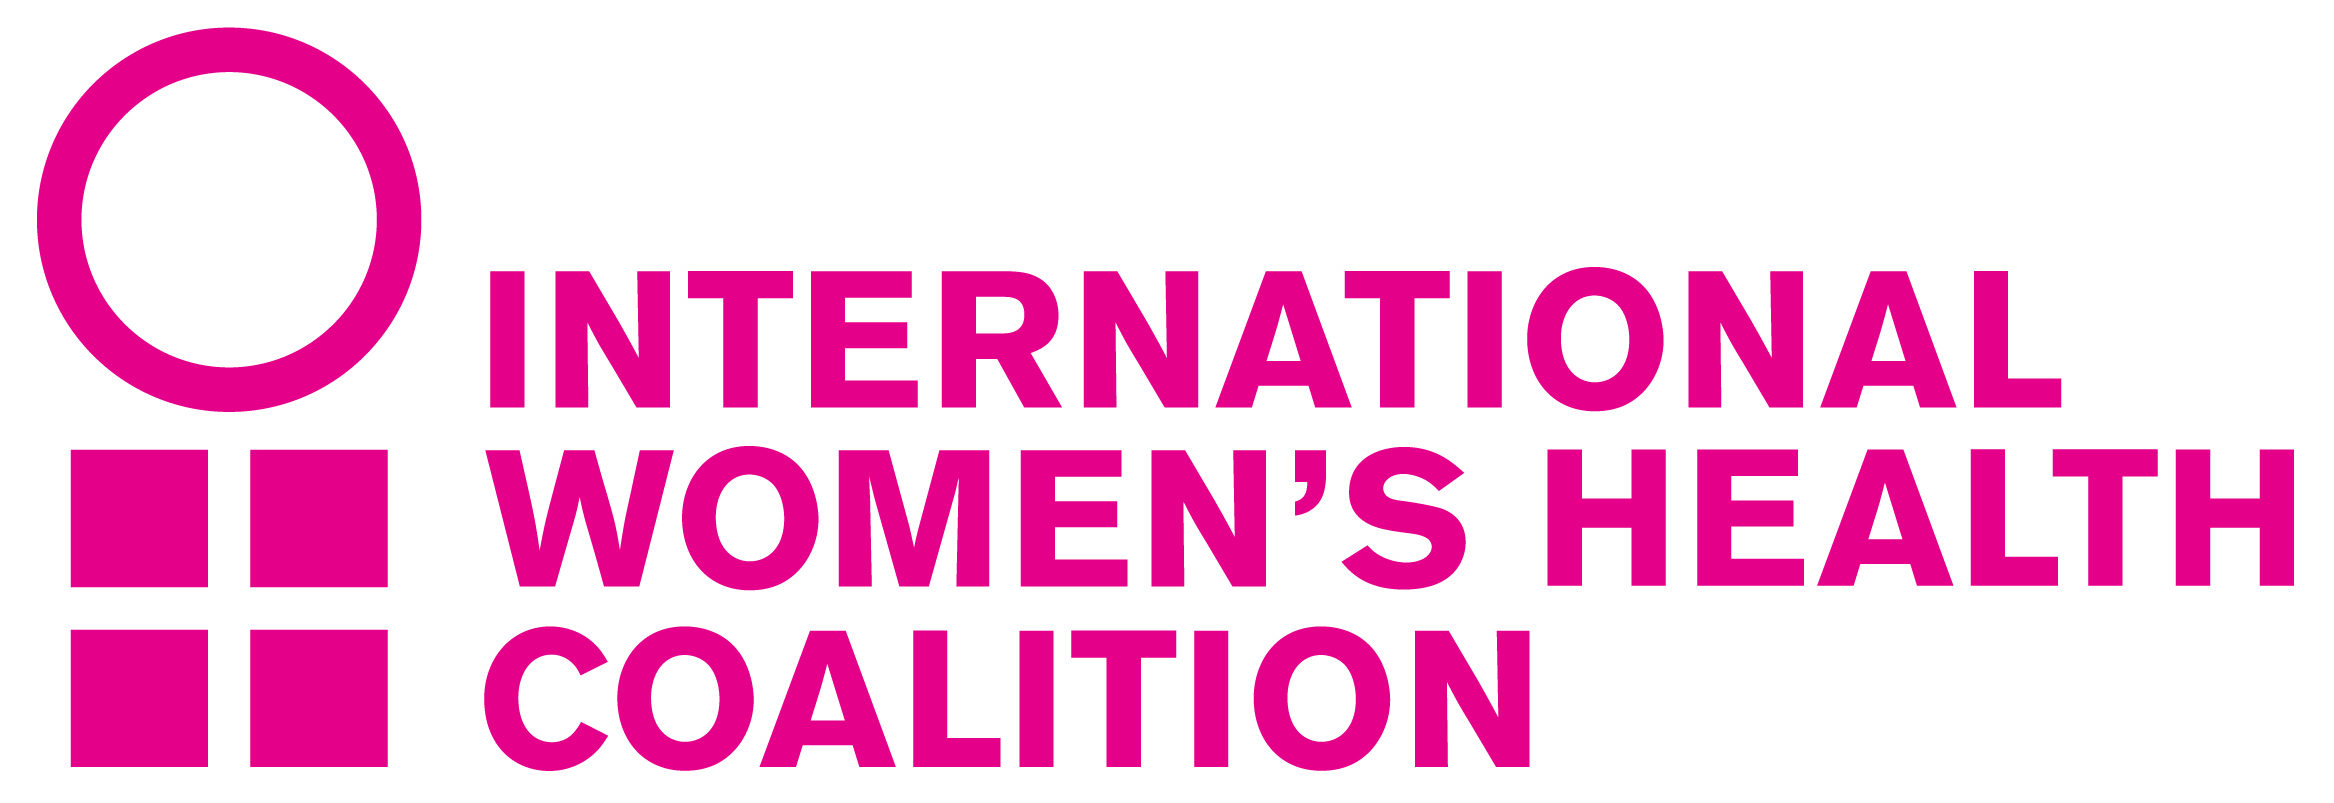 International Women_s Health Coalition logo